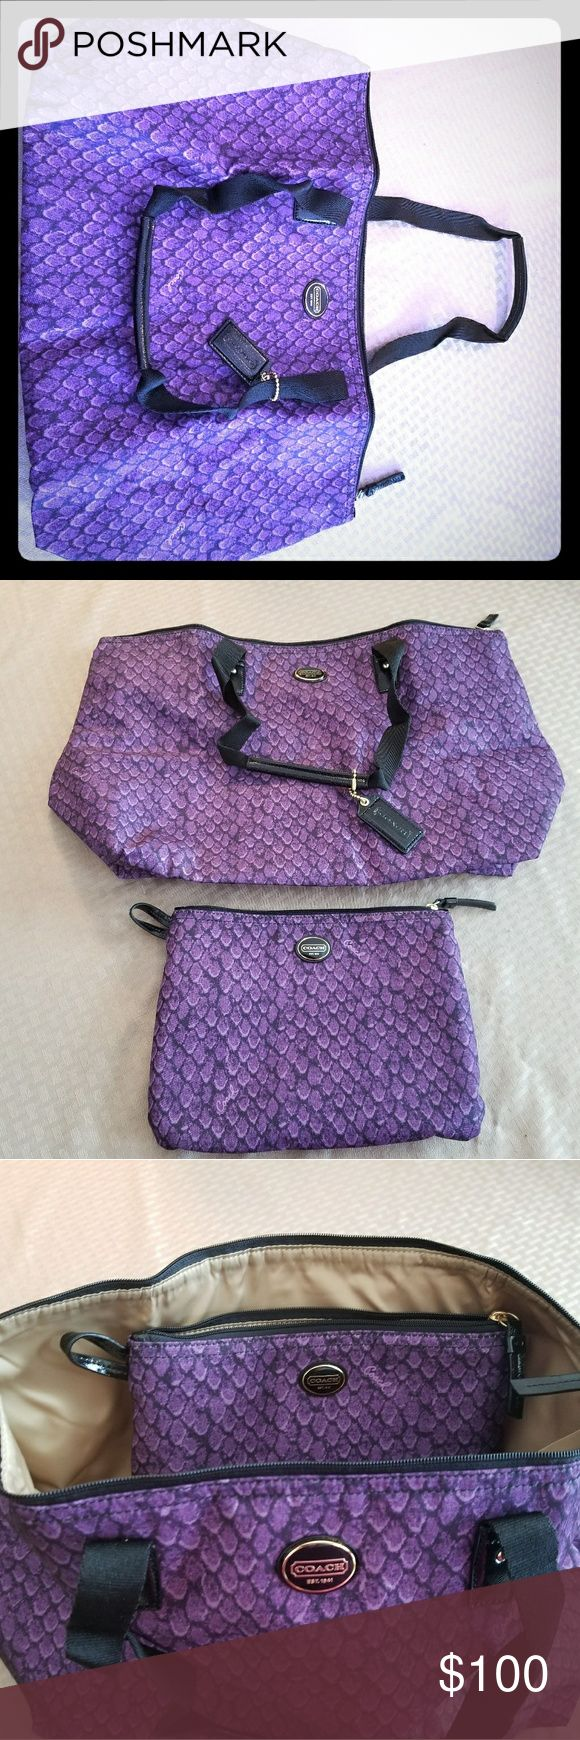 Coach Travel/Overnight Bag Brand New Purple Coach Bags Travel Bags